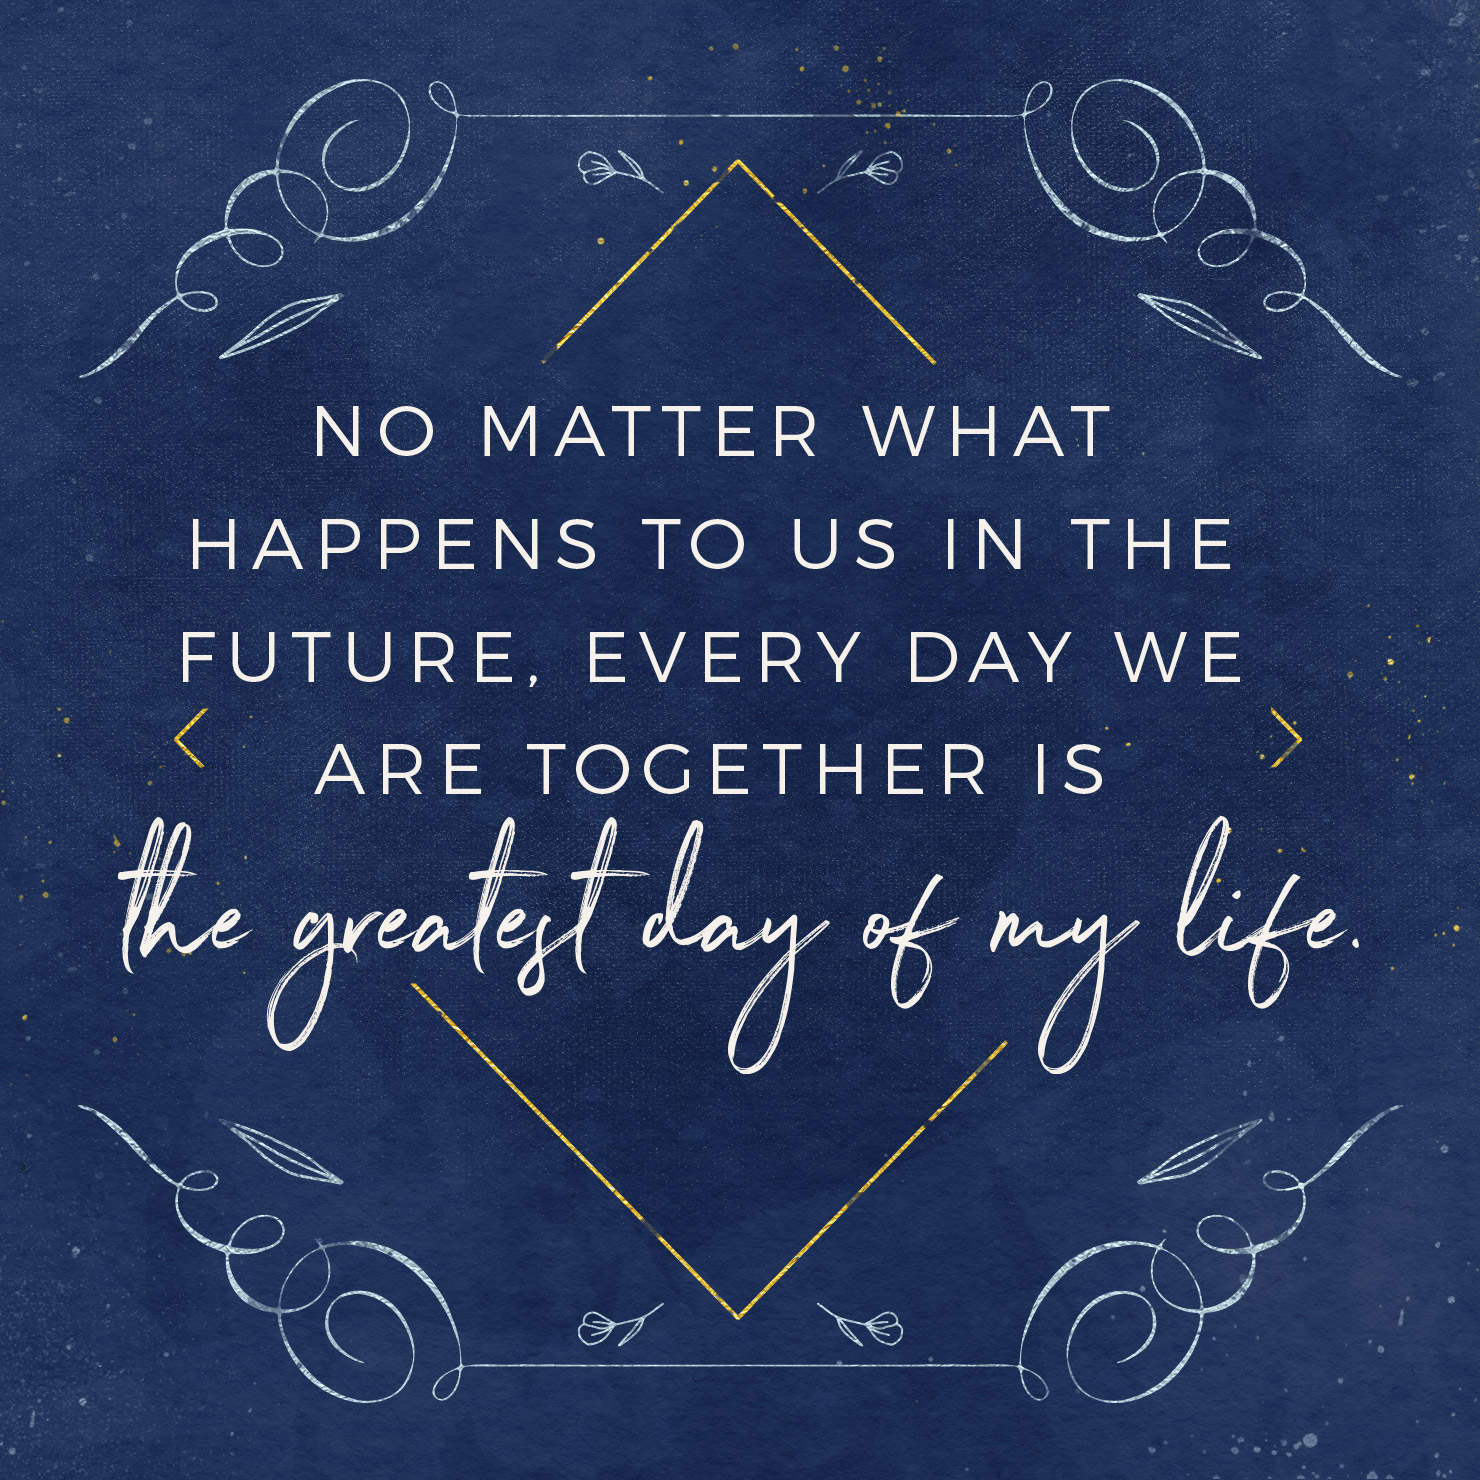 No matter what happens to us in the future, every day we are together is the greatest day of my life.